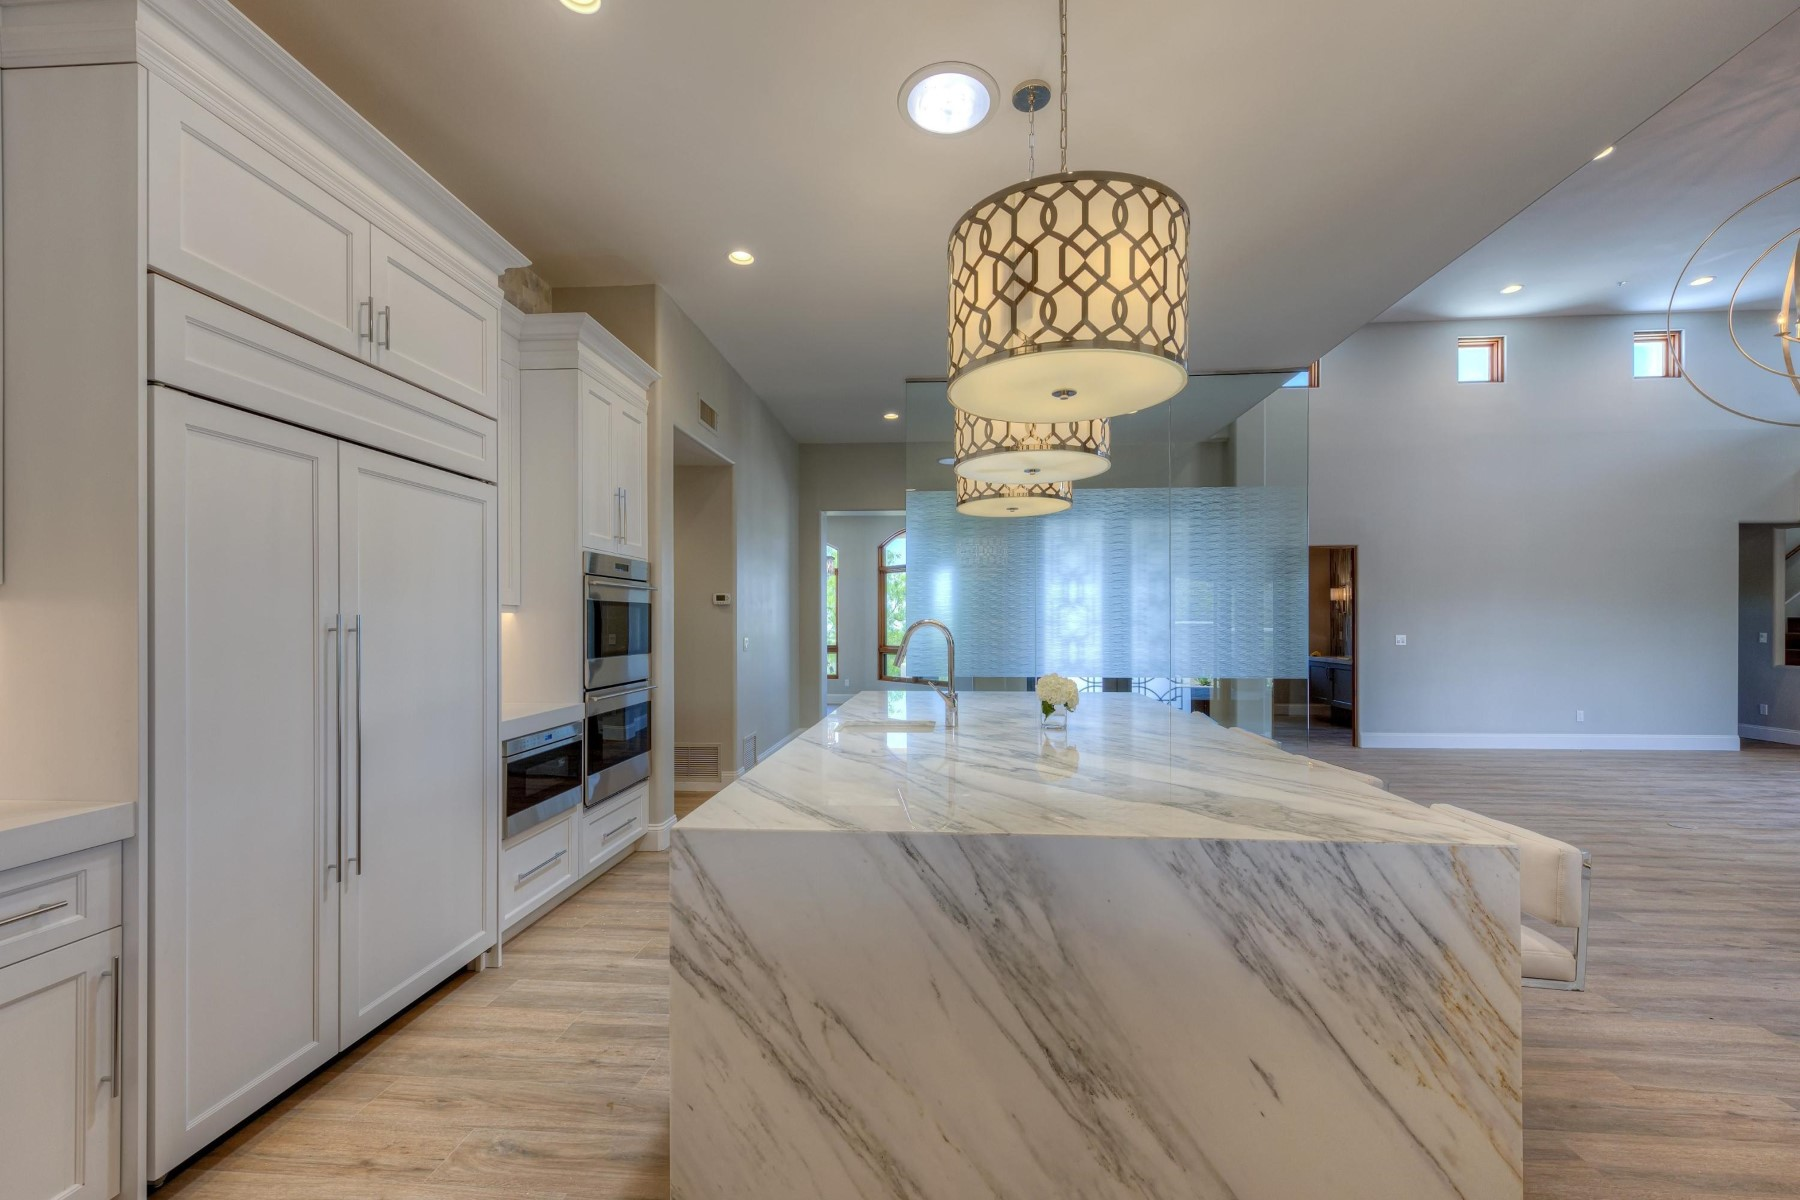 Single Family Home for Sale at Beautiful remodeled home on one of Desert Mountains premier golf lots 11313 E Mesquite Dr N Scottsdale, Arizona, 85262 United States